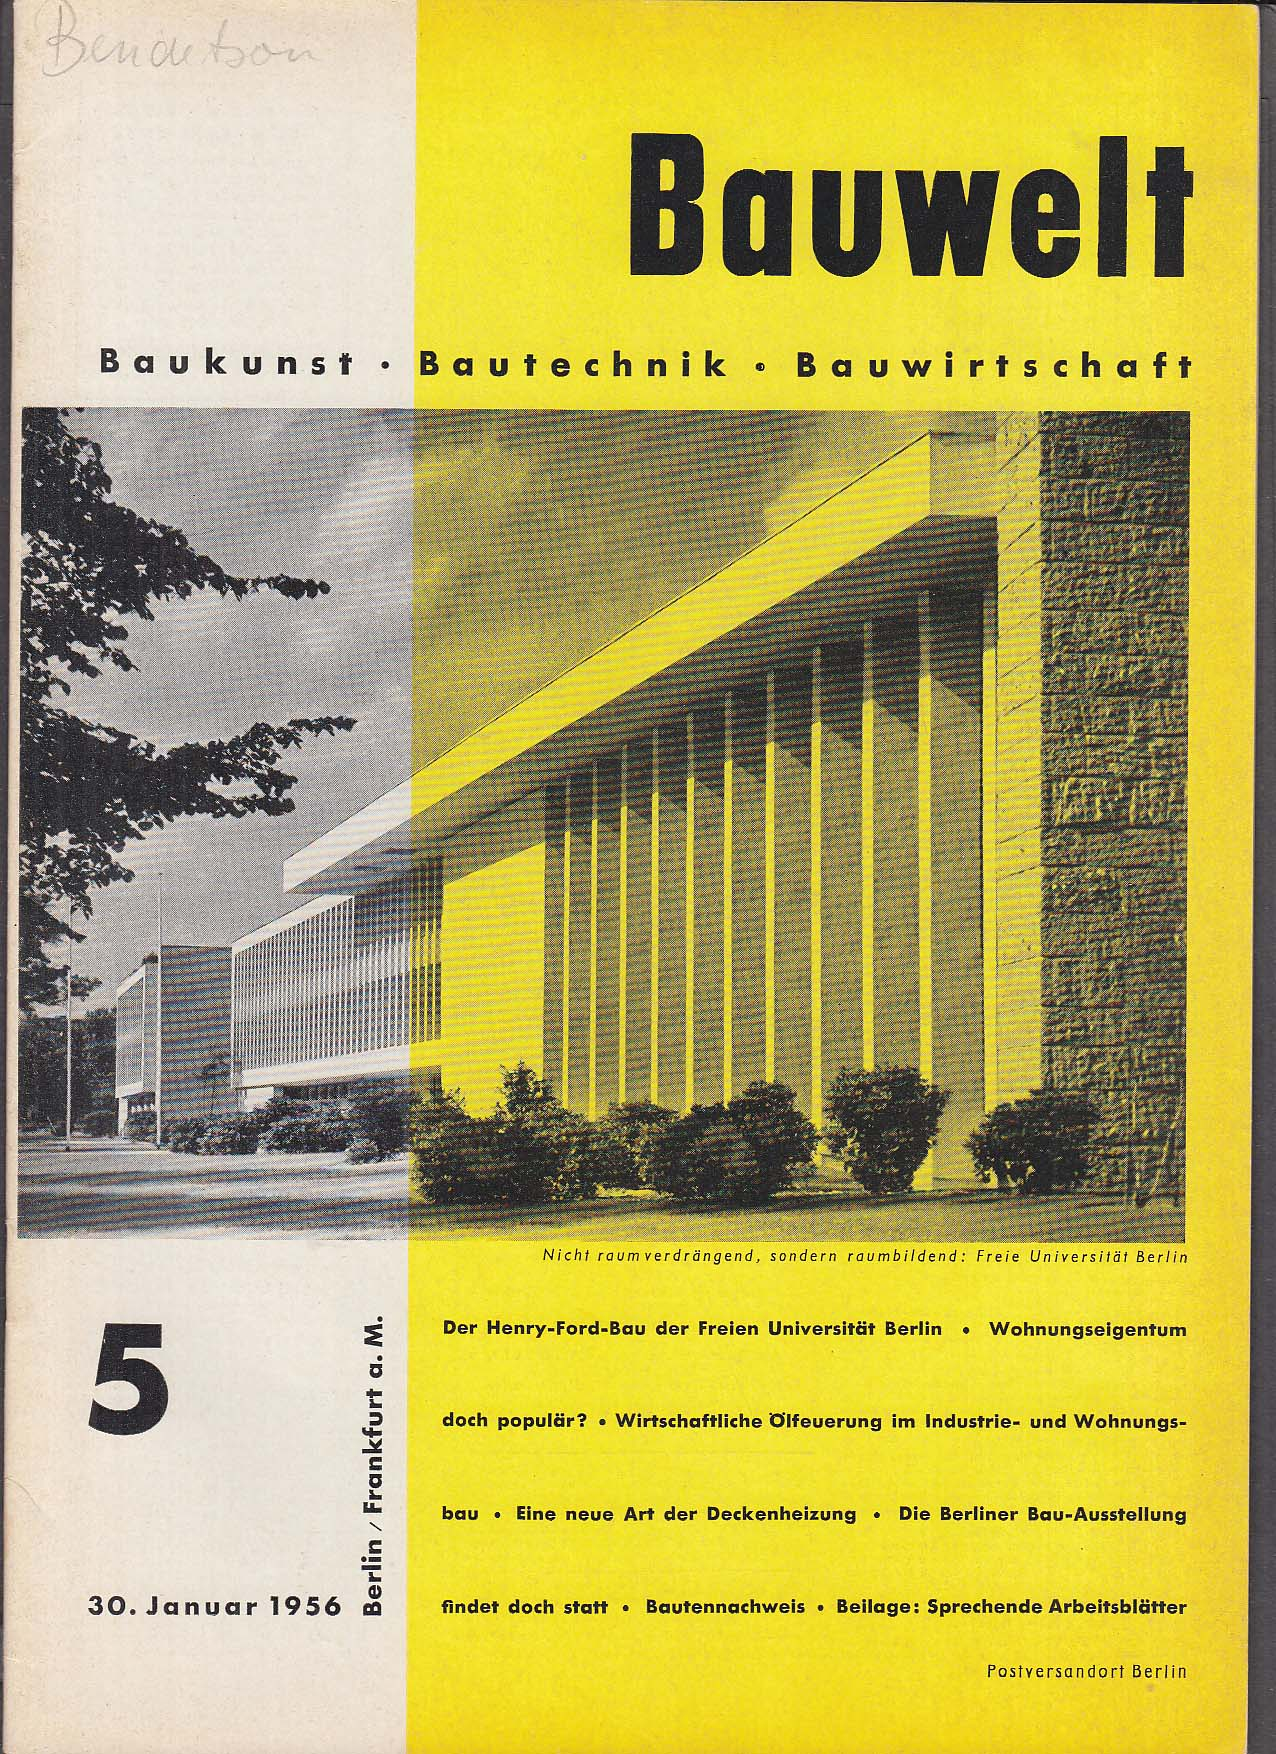 Bauwelt German architecture magazine 1/30/1956 5